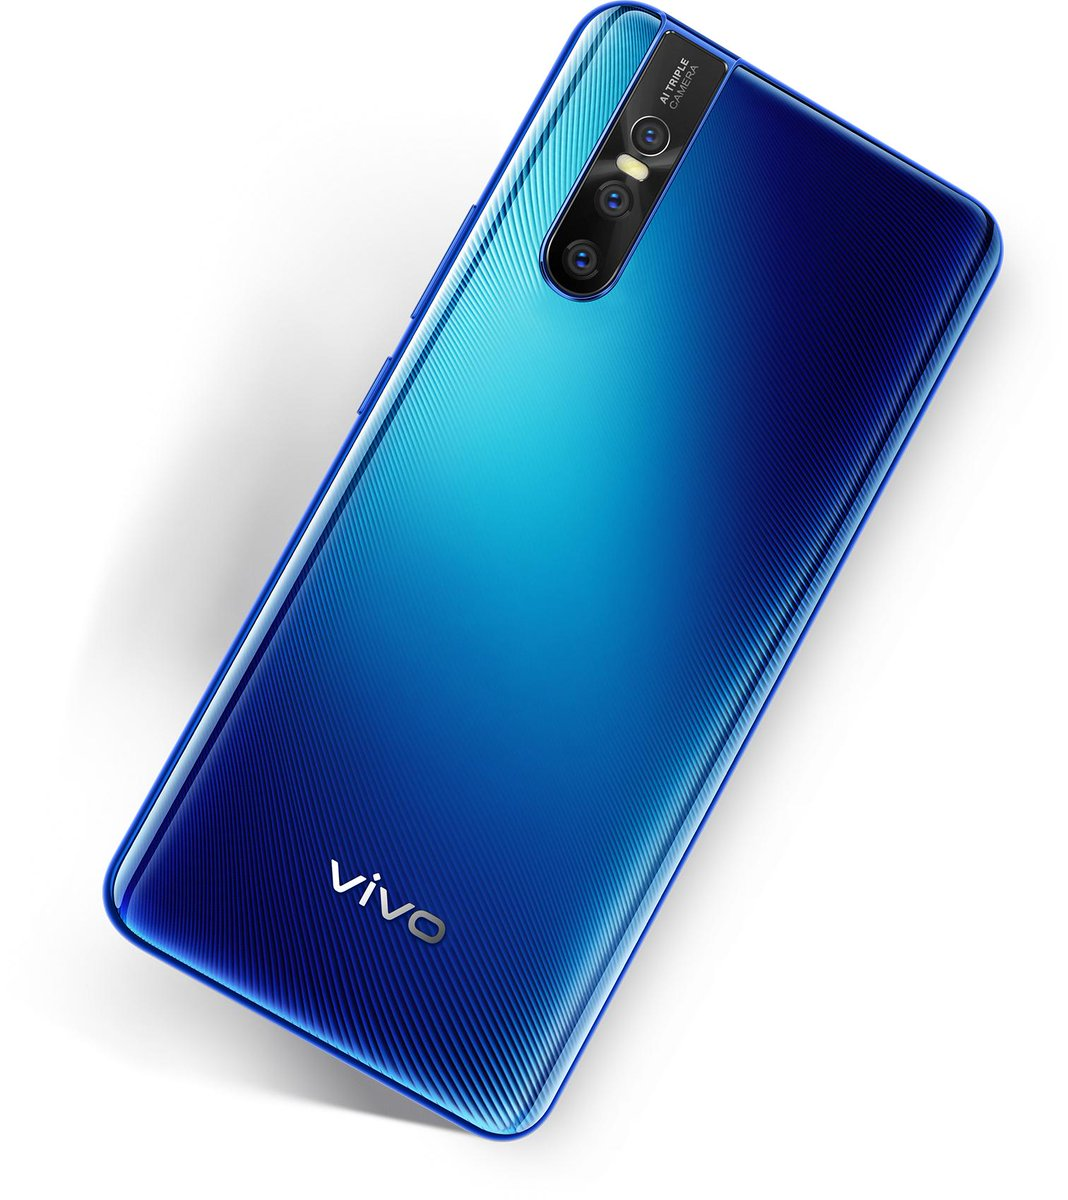 Xda-Developers | Vivo V15Pro launches in India with a 32MP pop-up